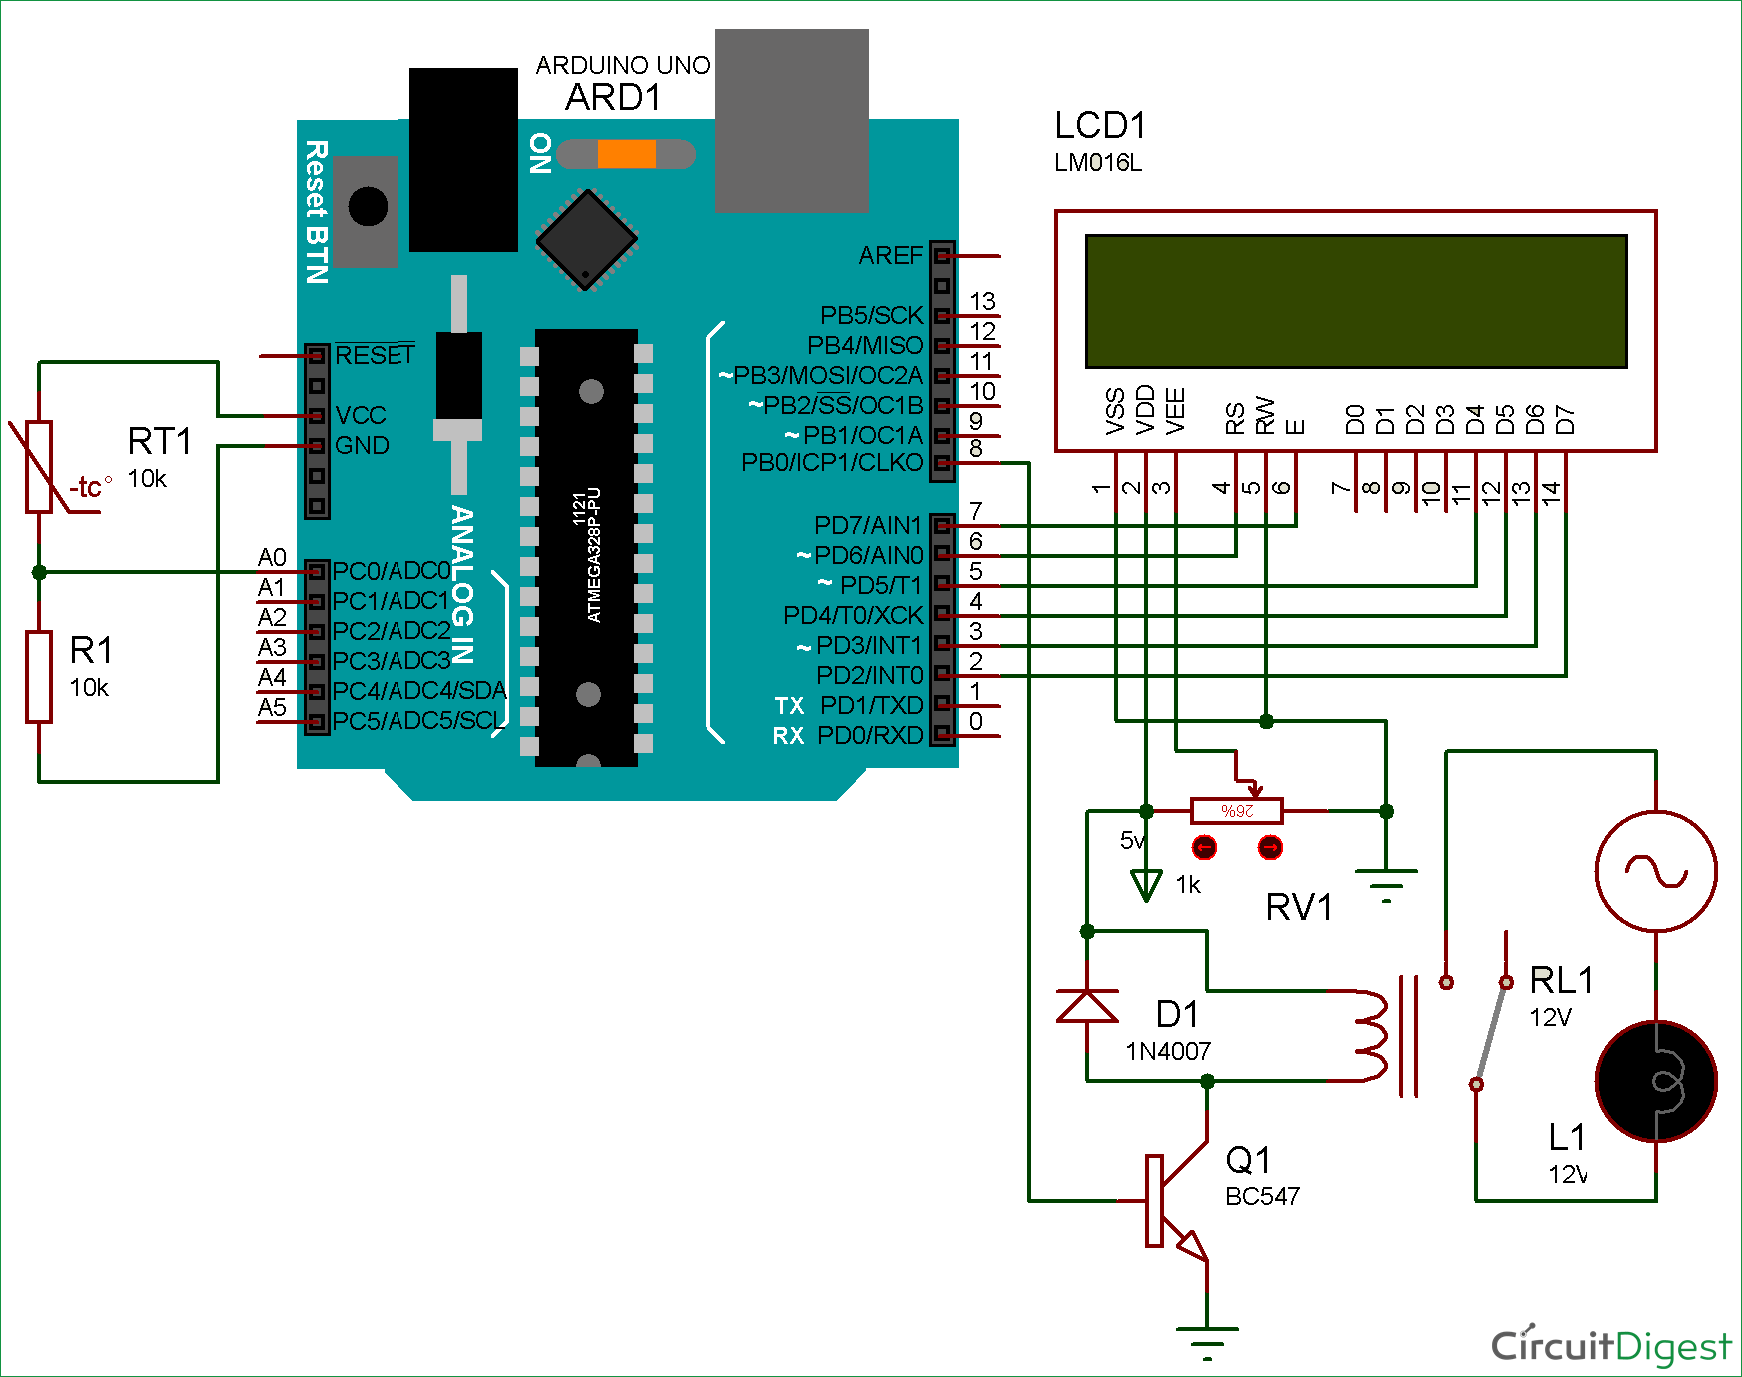 circuit diagram to control relay using arduino based on temperature [ 1742 x 1377 Pixel ]